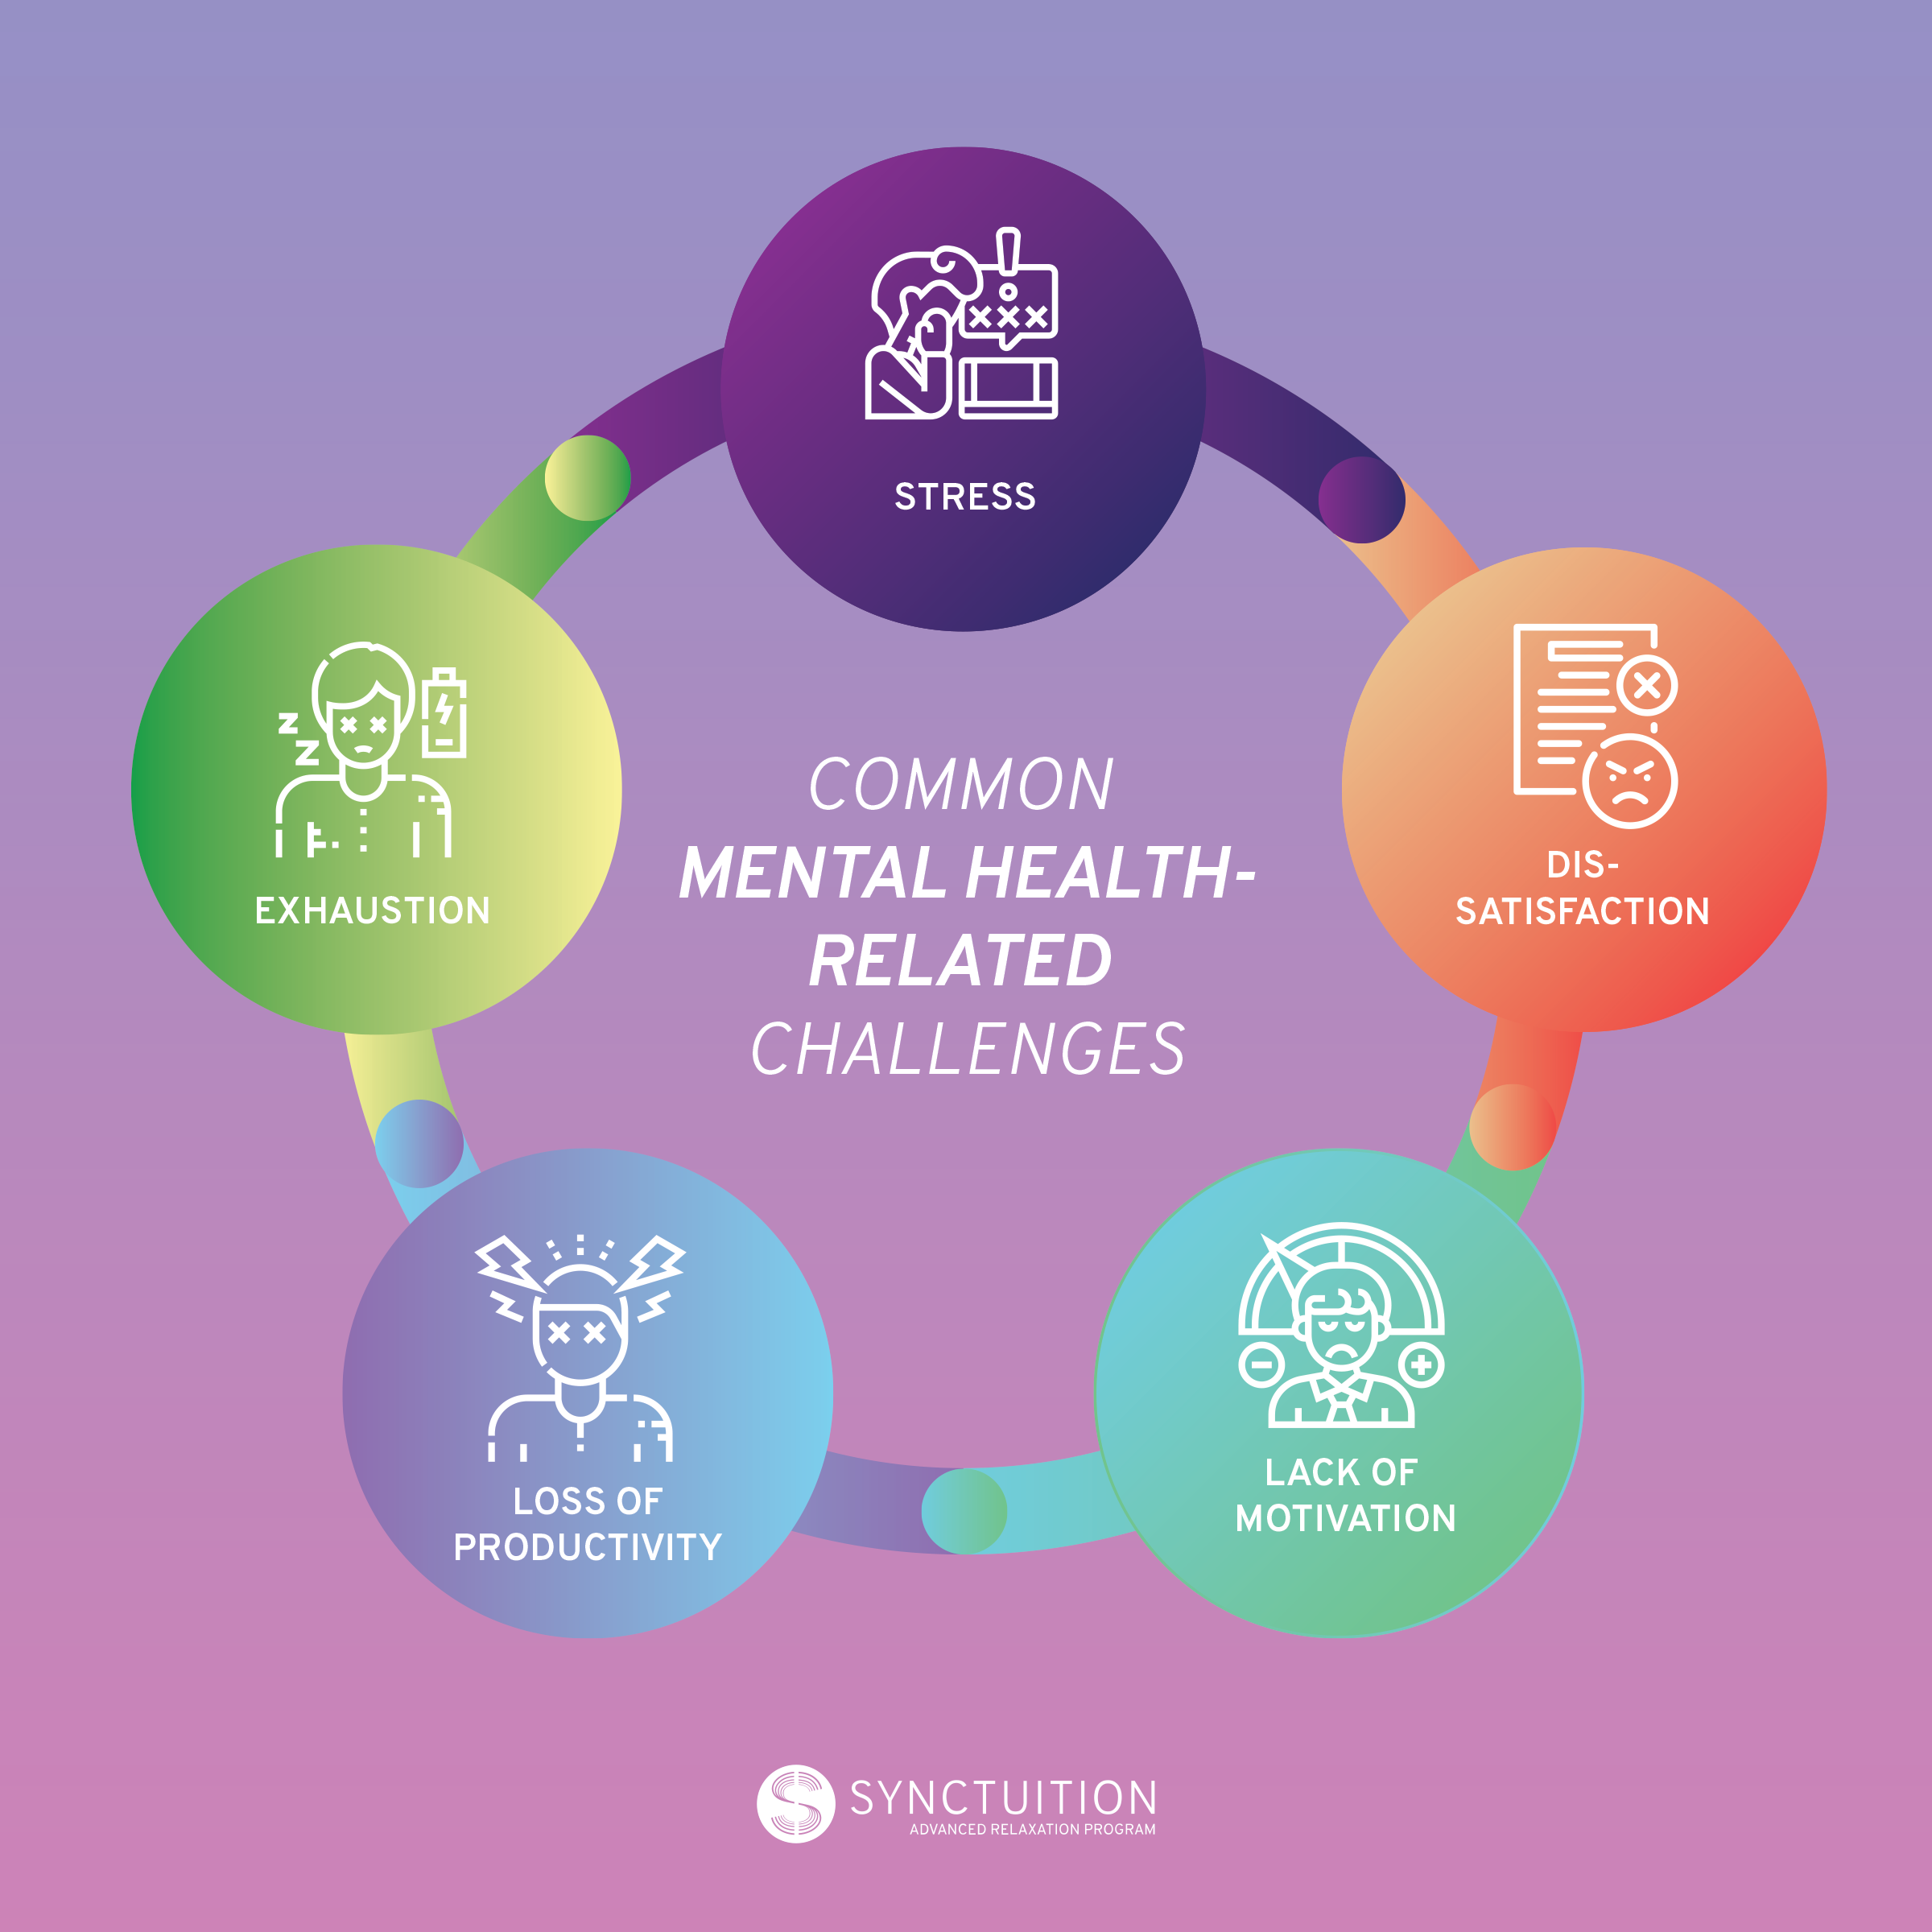 Common mental health-related challenges include stress and exhaustion.